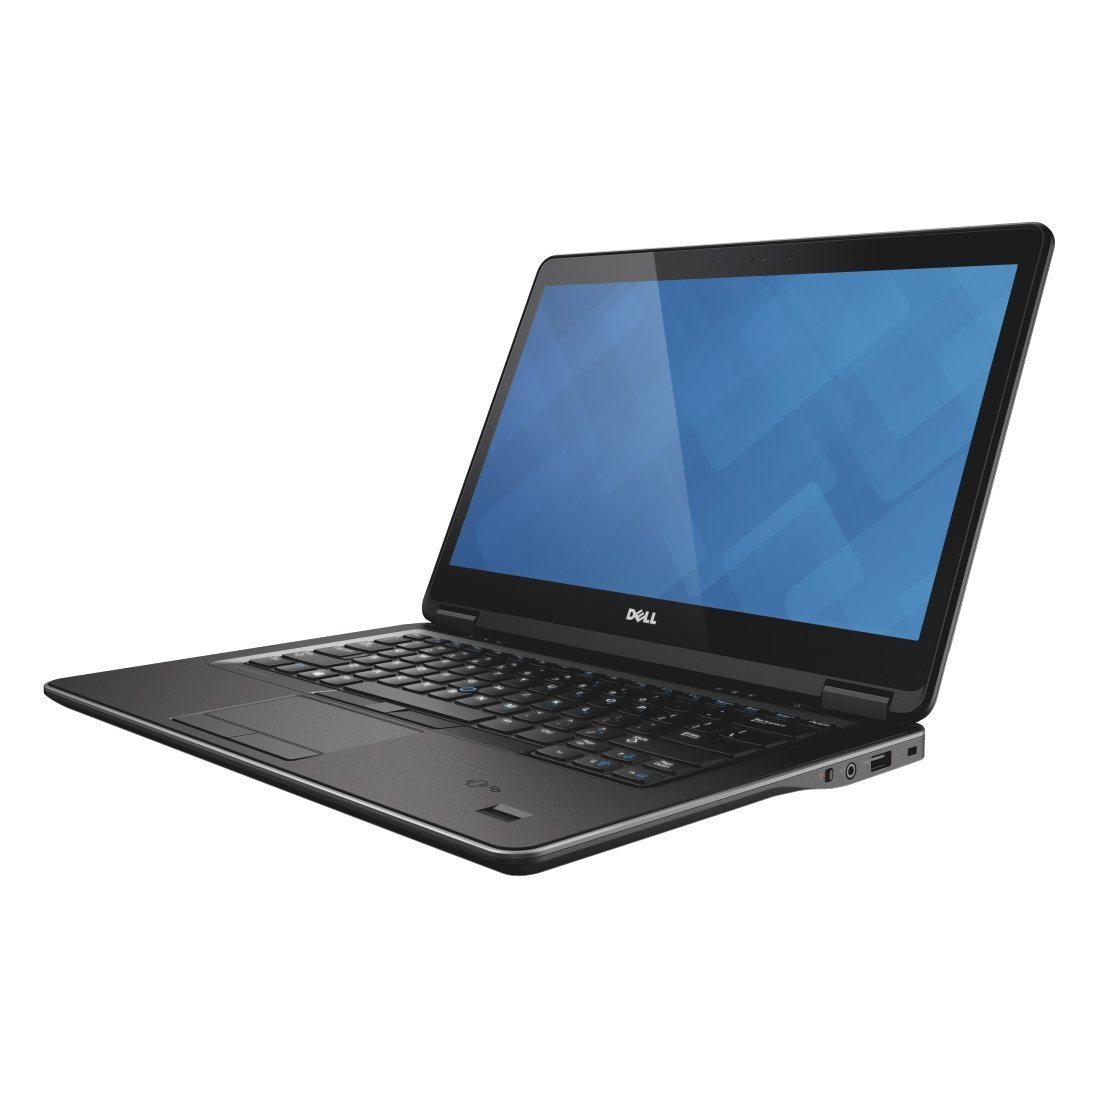 "Dell Latitude E7440 14.1"" Hd Business Laptop Computer, Intel Core I5 4200 U Up To 2.6 G Hz, 8 Gb Ram, 128 Gb Ssd, Usb 3.0, Bluetooth 4.0, Hdmi, Wi Fi, Windows 10 Professional (Certified Refurbished) by Dell"